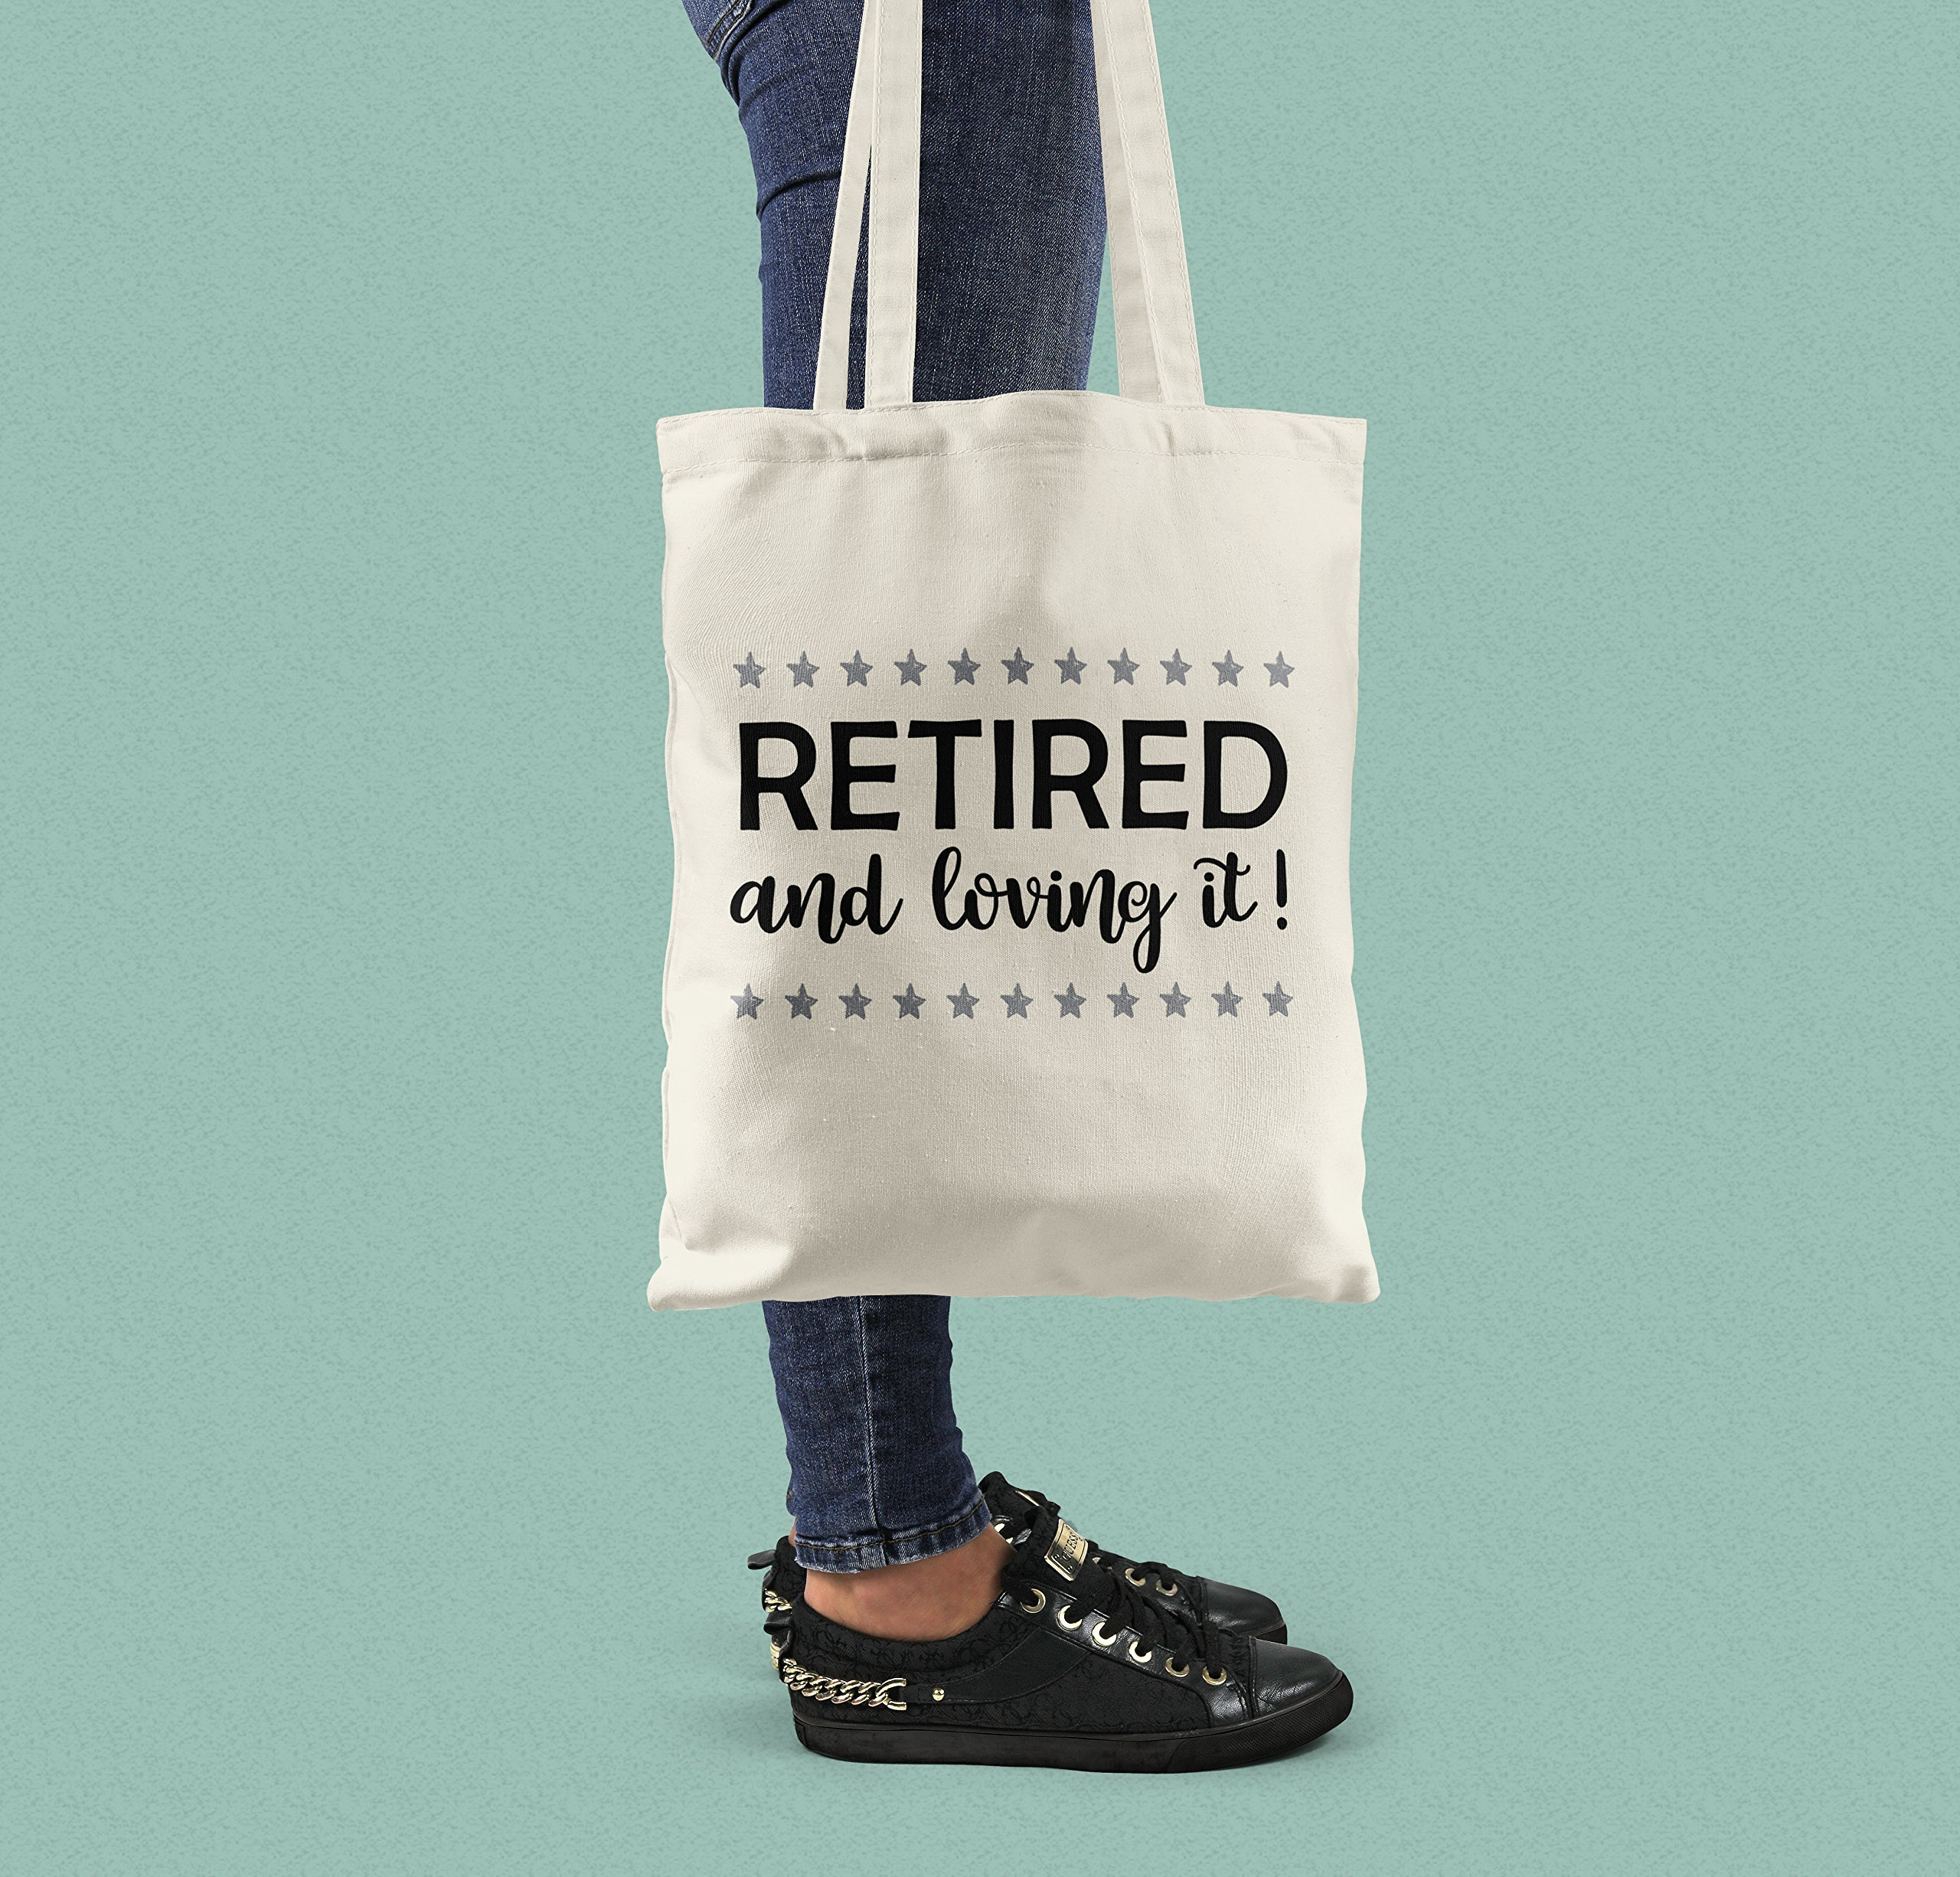 Retirement Gift - Retired and Loving It! Canvas Tote Bag - handmade-bags